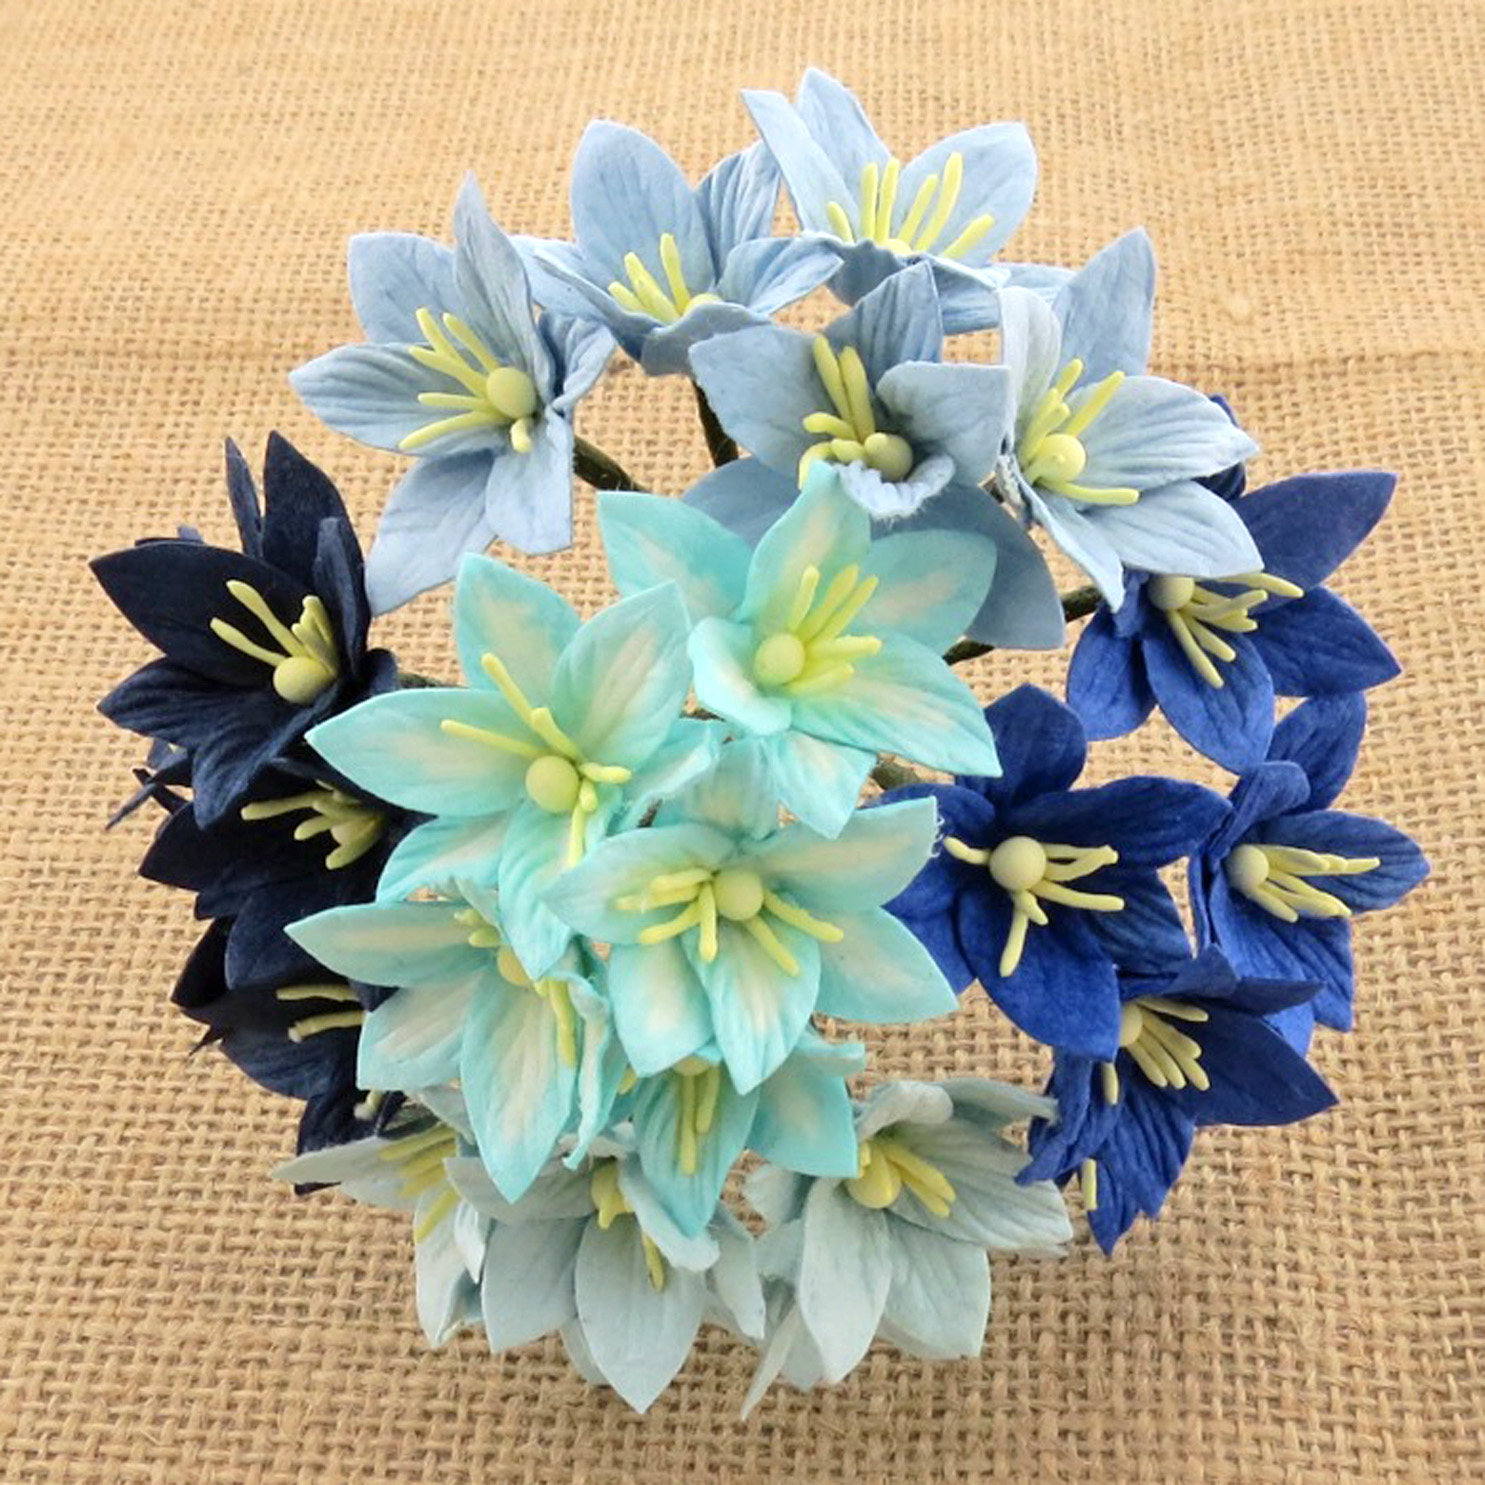 Wild orchids craft - 50 MIXED BLUE MULBERRY PAPER LILY FLOWERS - 5 COLOR